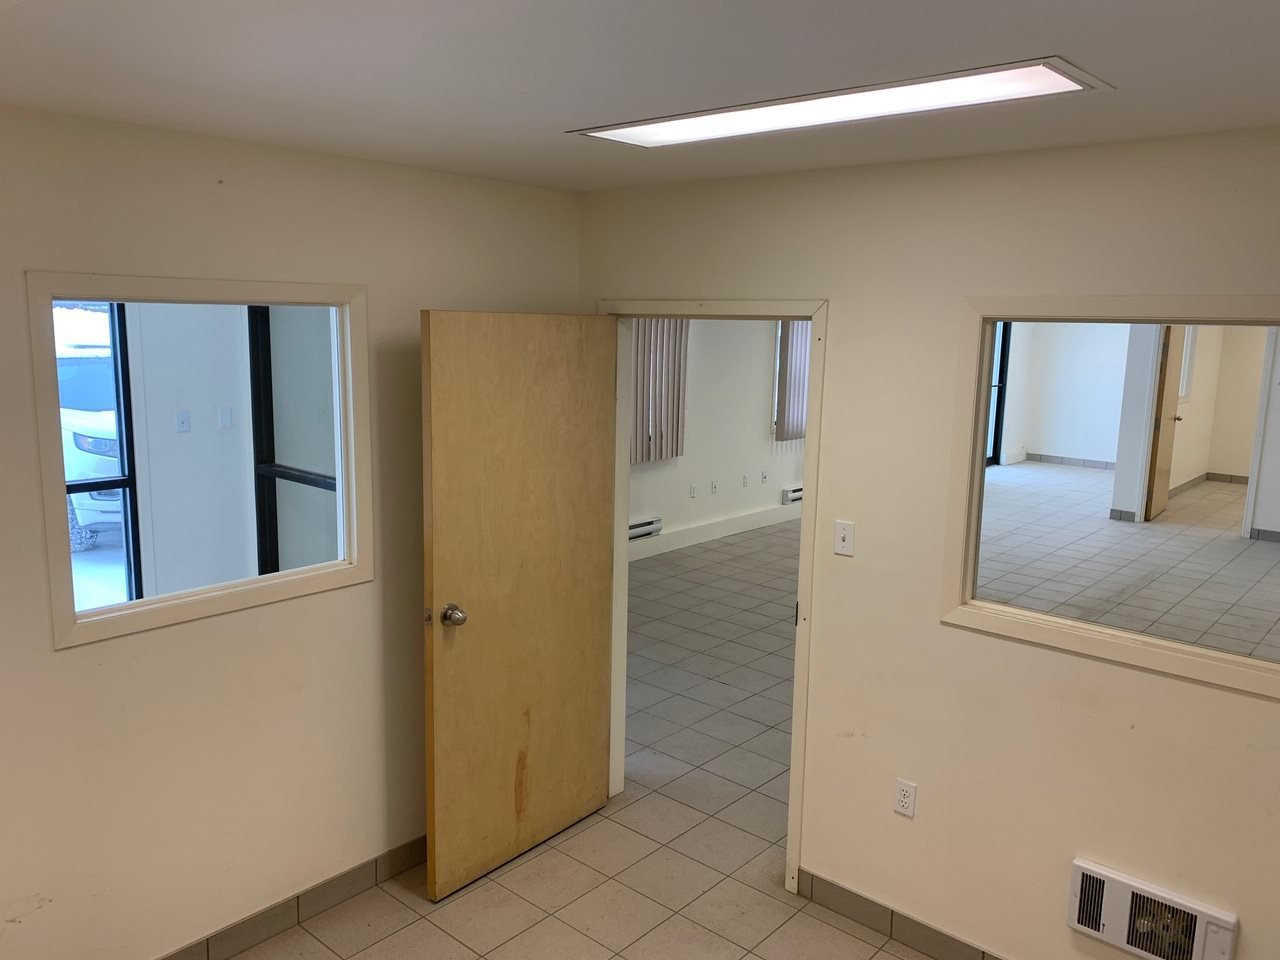 Photo 5: Photos: 9624 SIKANNI Road in Fort St. John: Fort St. John - City SE Industrial for lease (Fort St. John (Zone 60))  : MLS®# C8029456